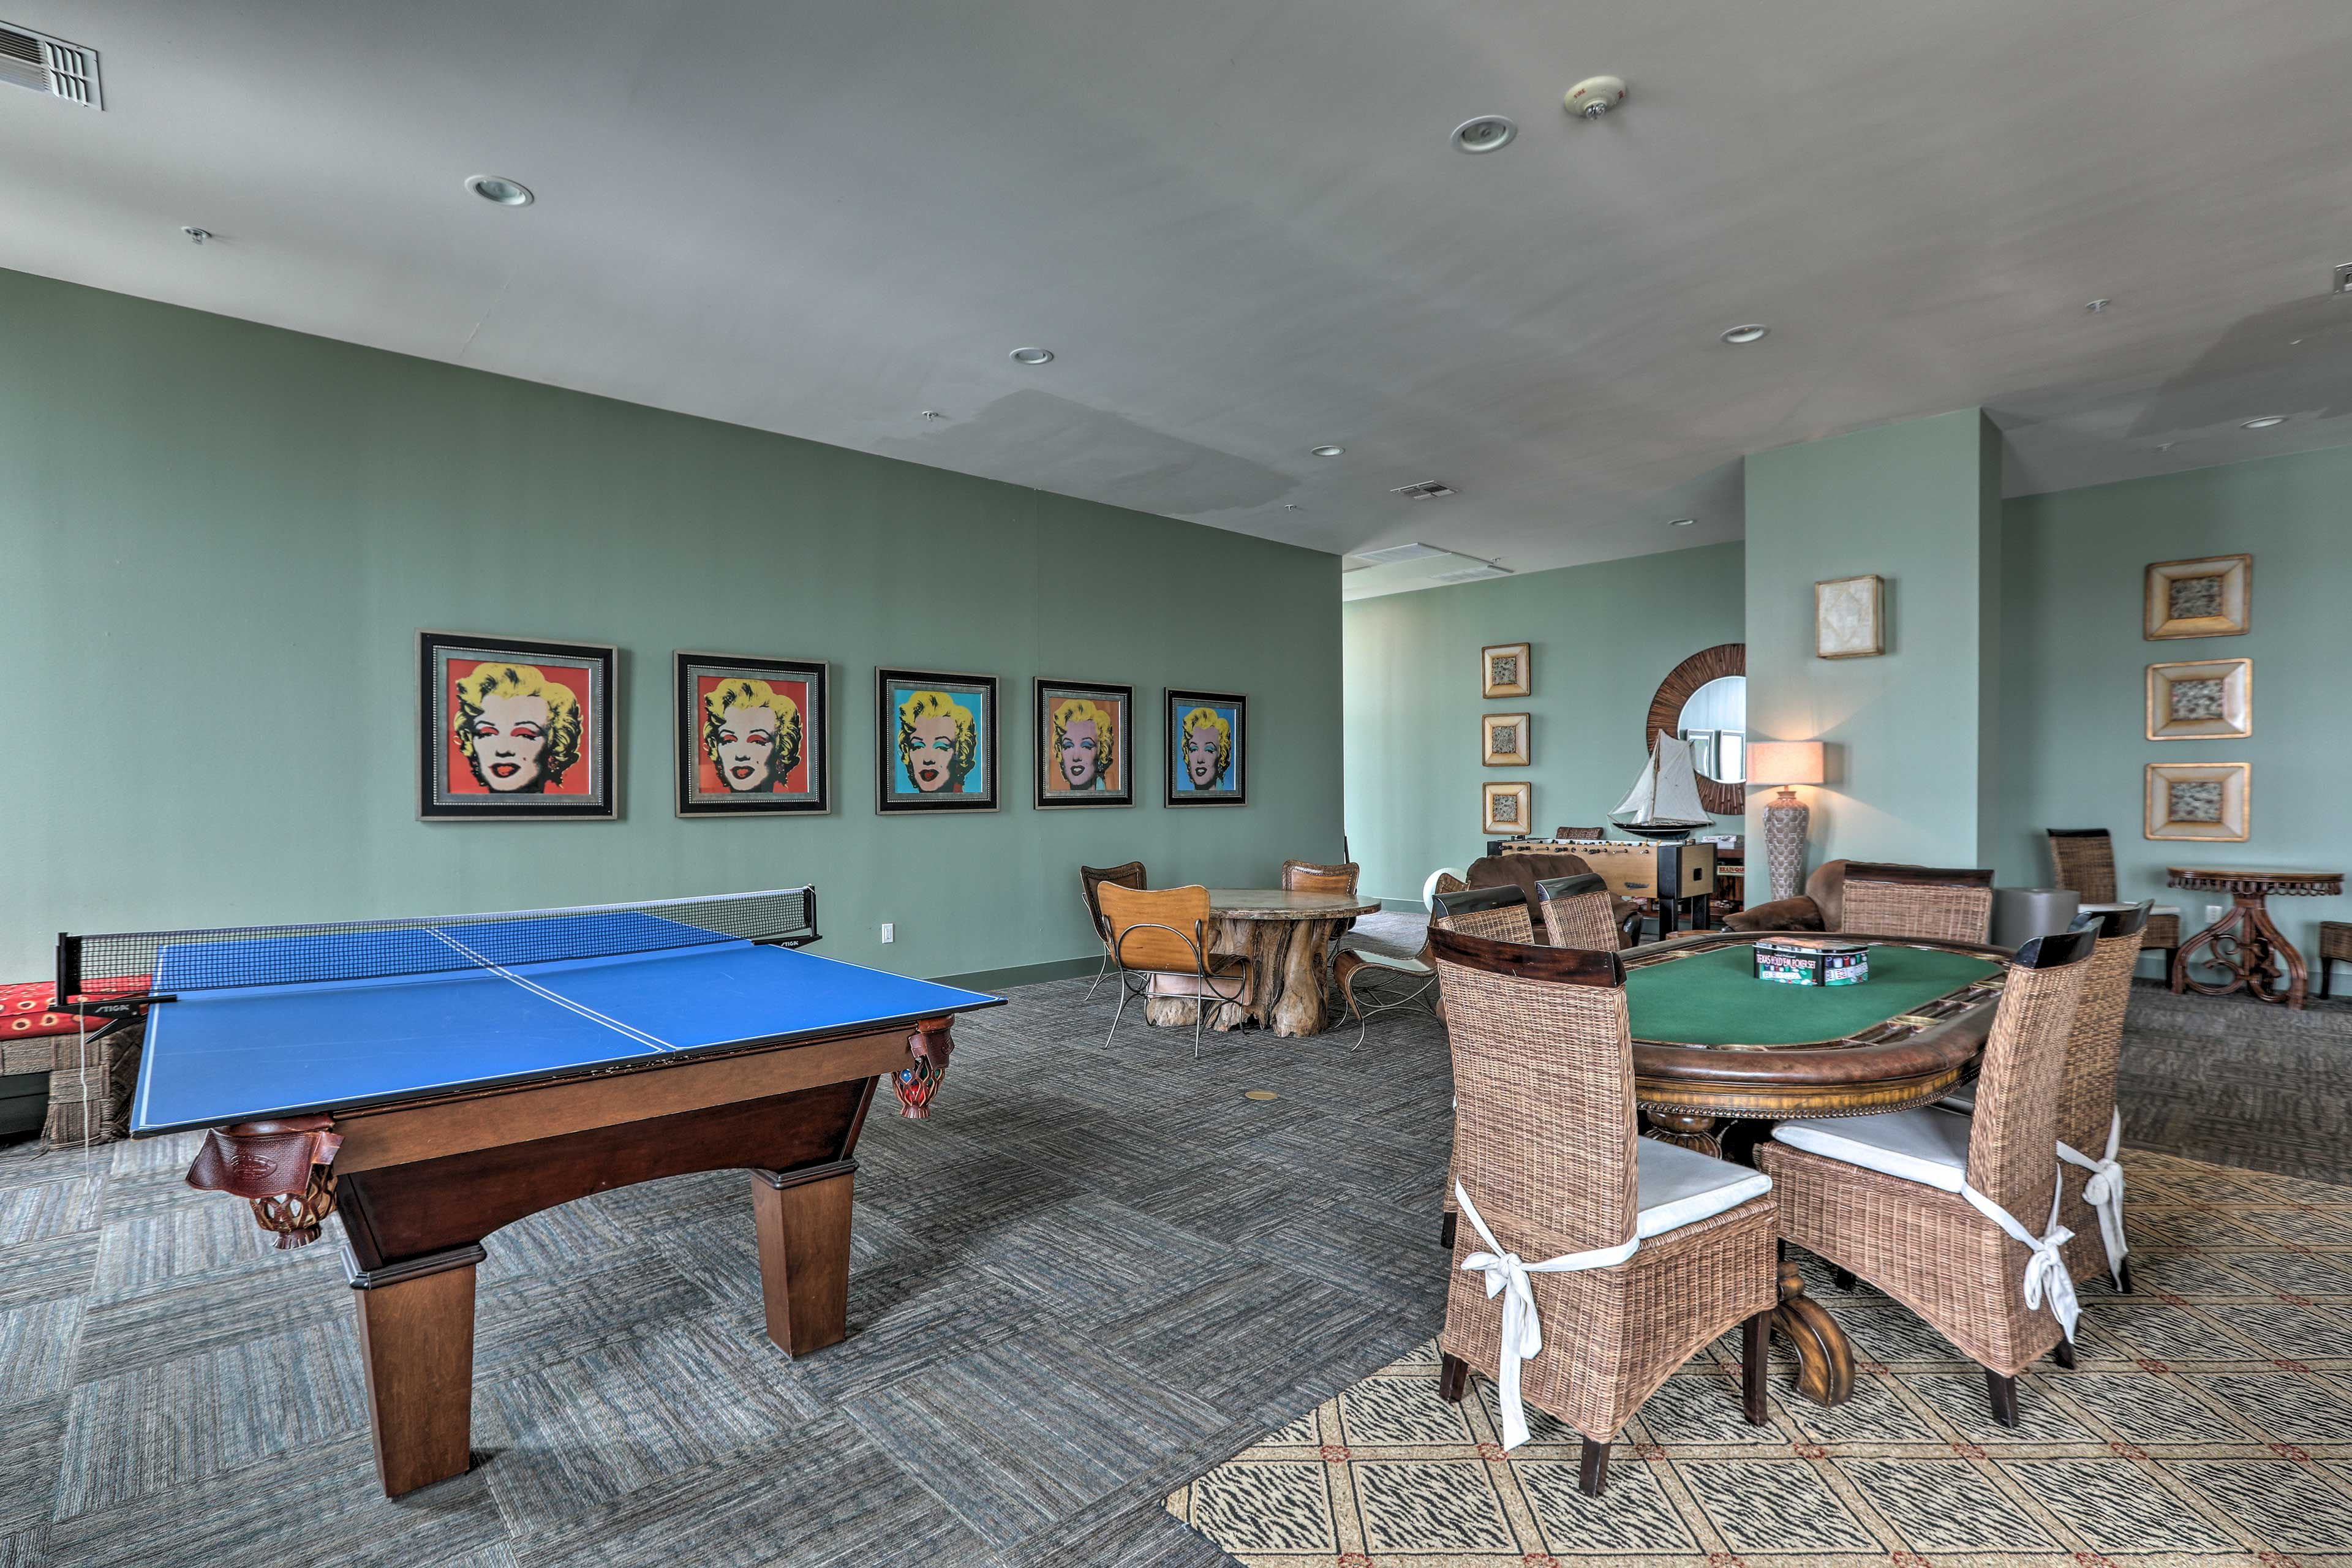 This space also offers a poker table and a foosball table.